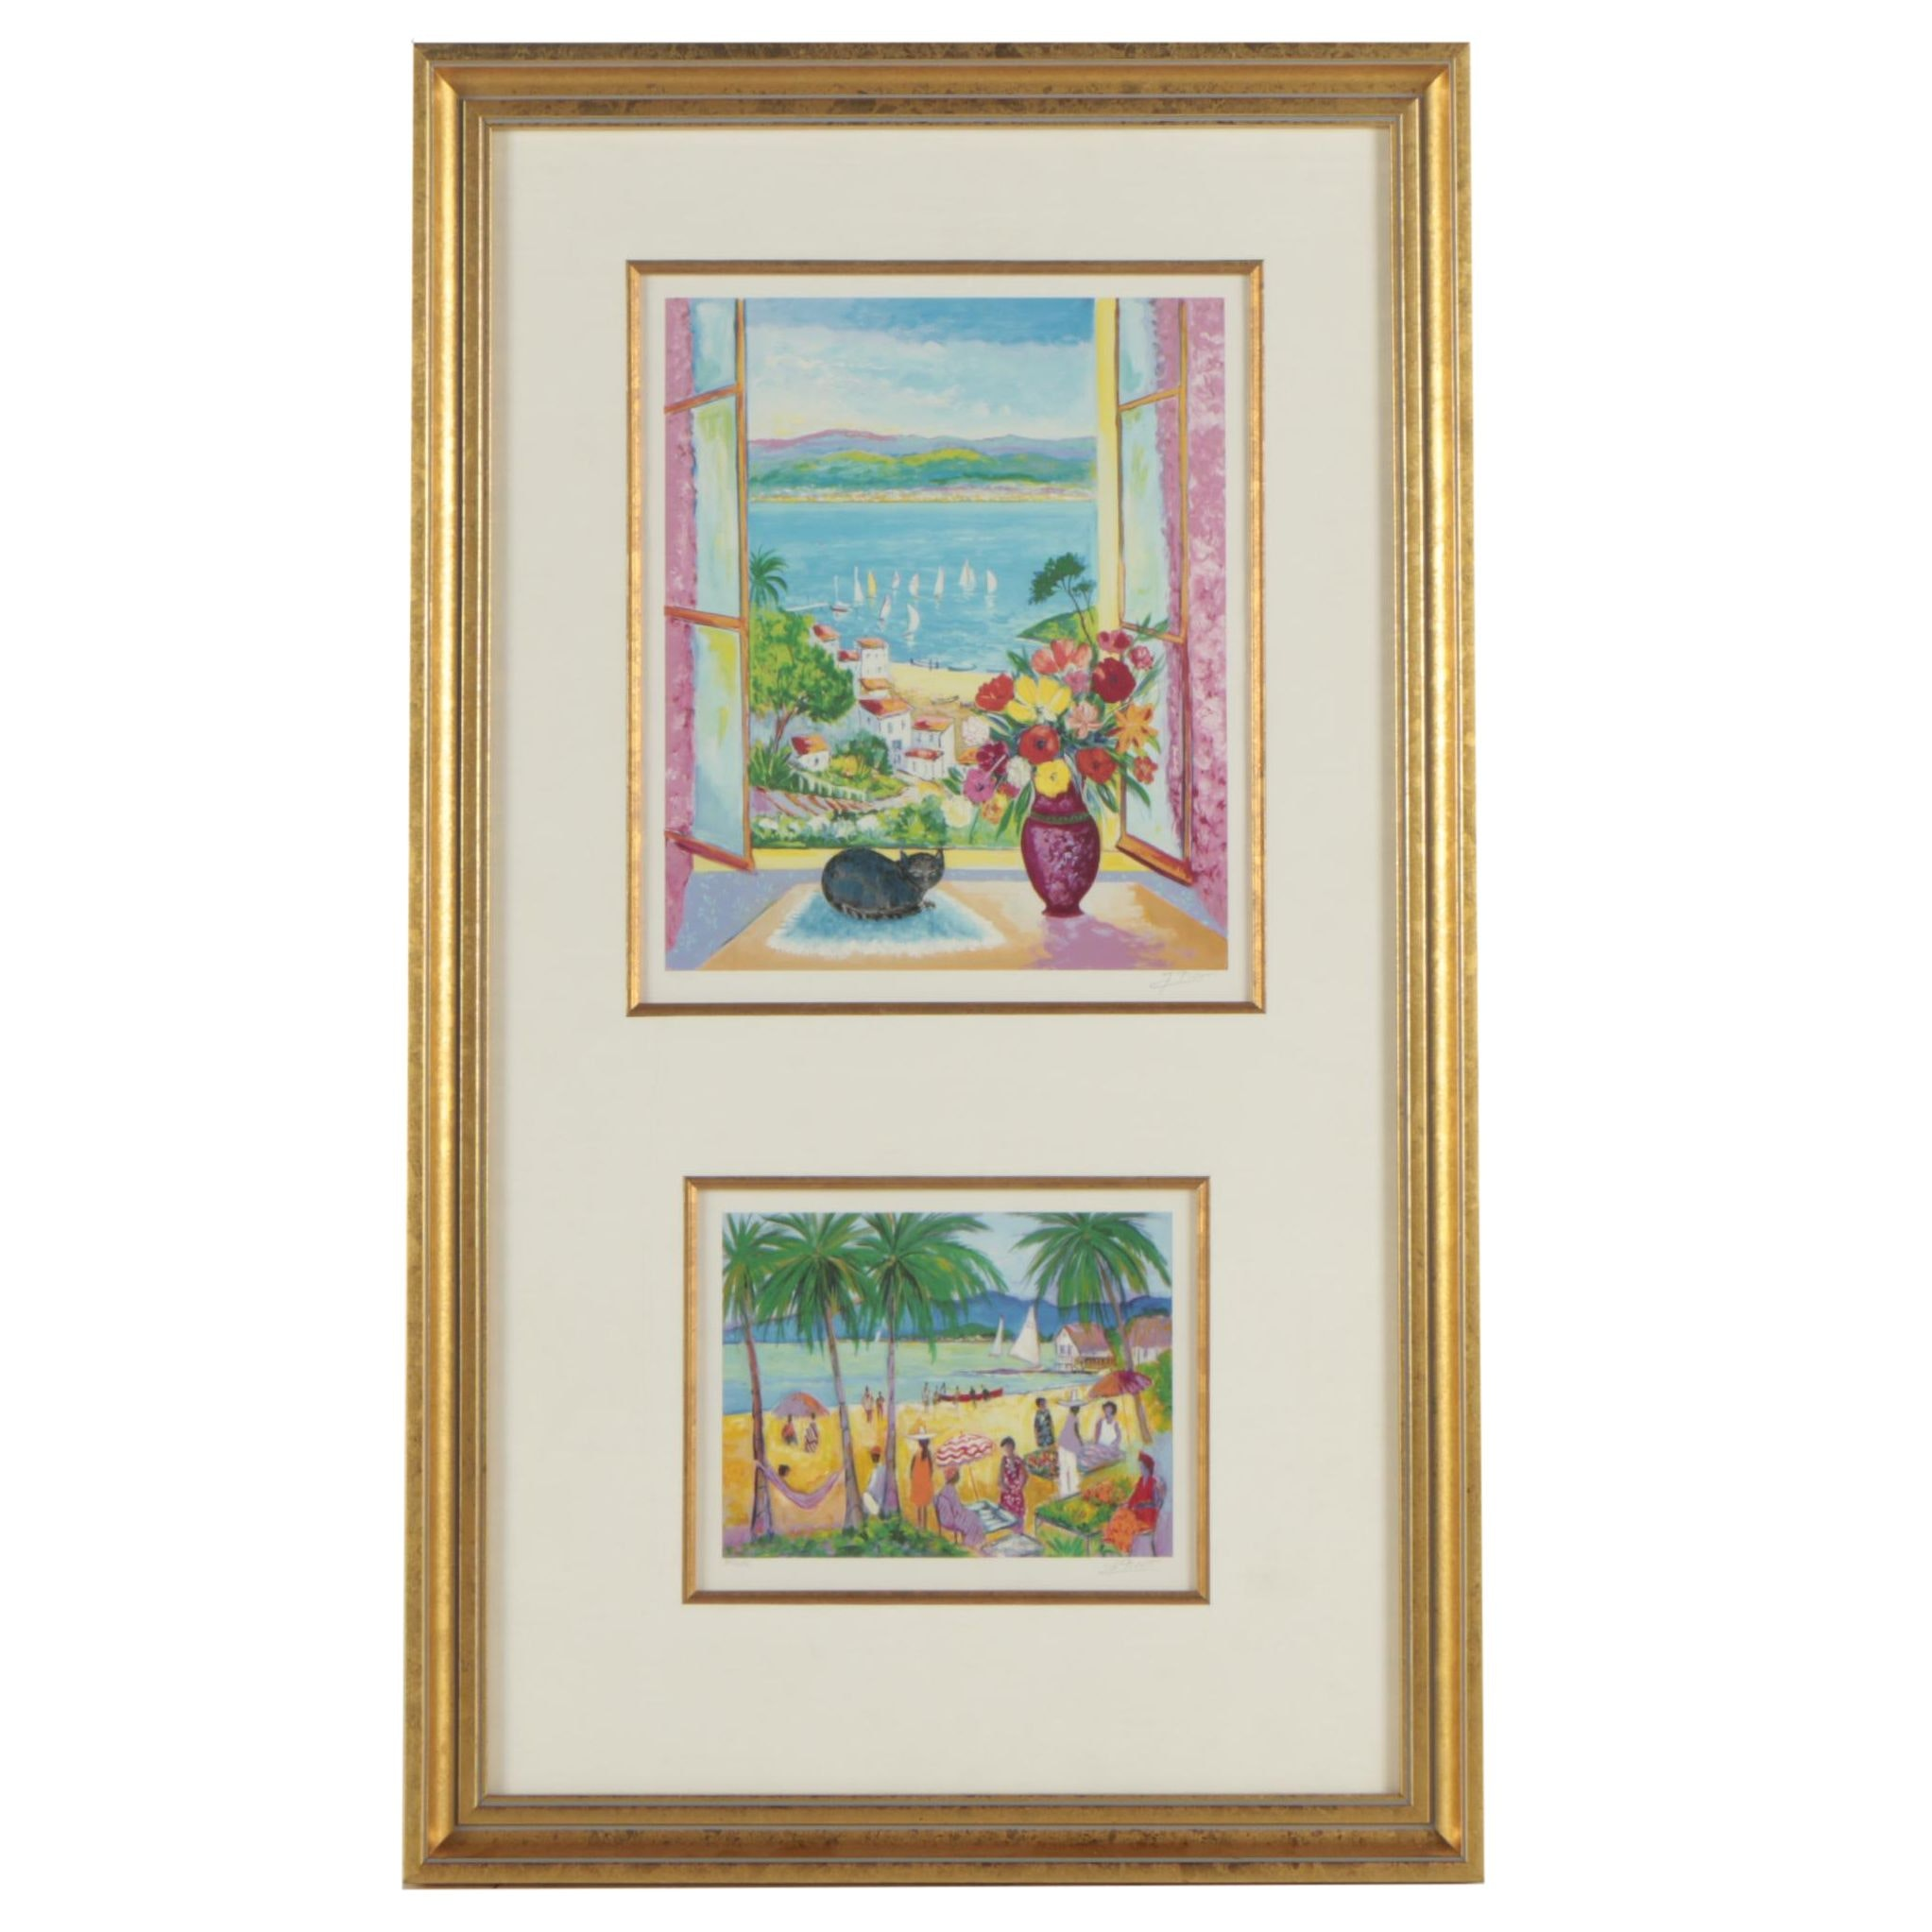 Jean-Claude Picot Limited Edition Seriolithographs of Coastal Scenes